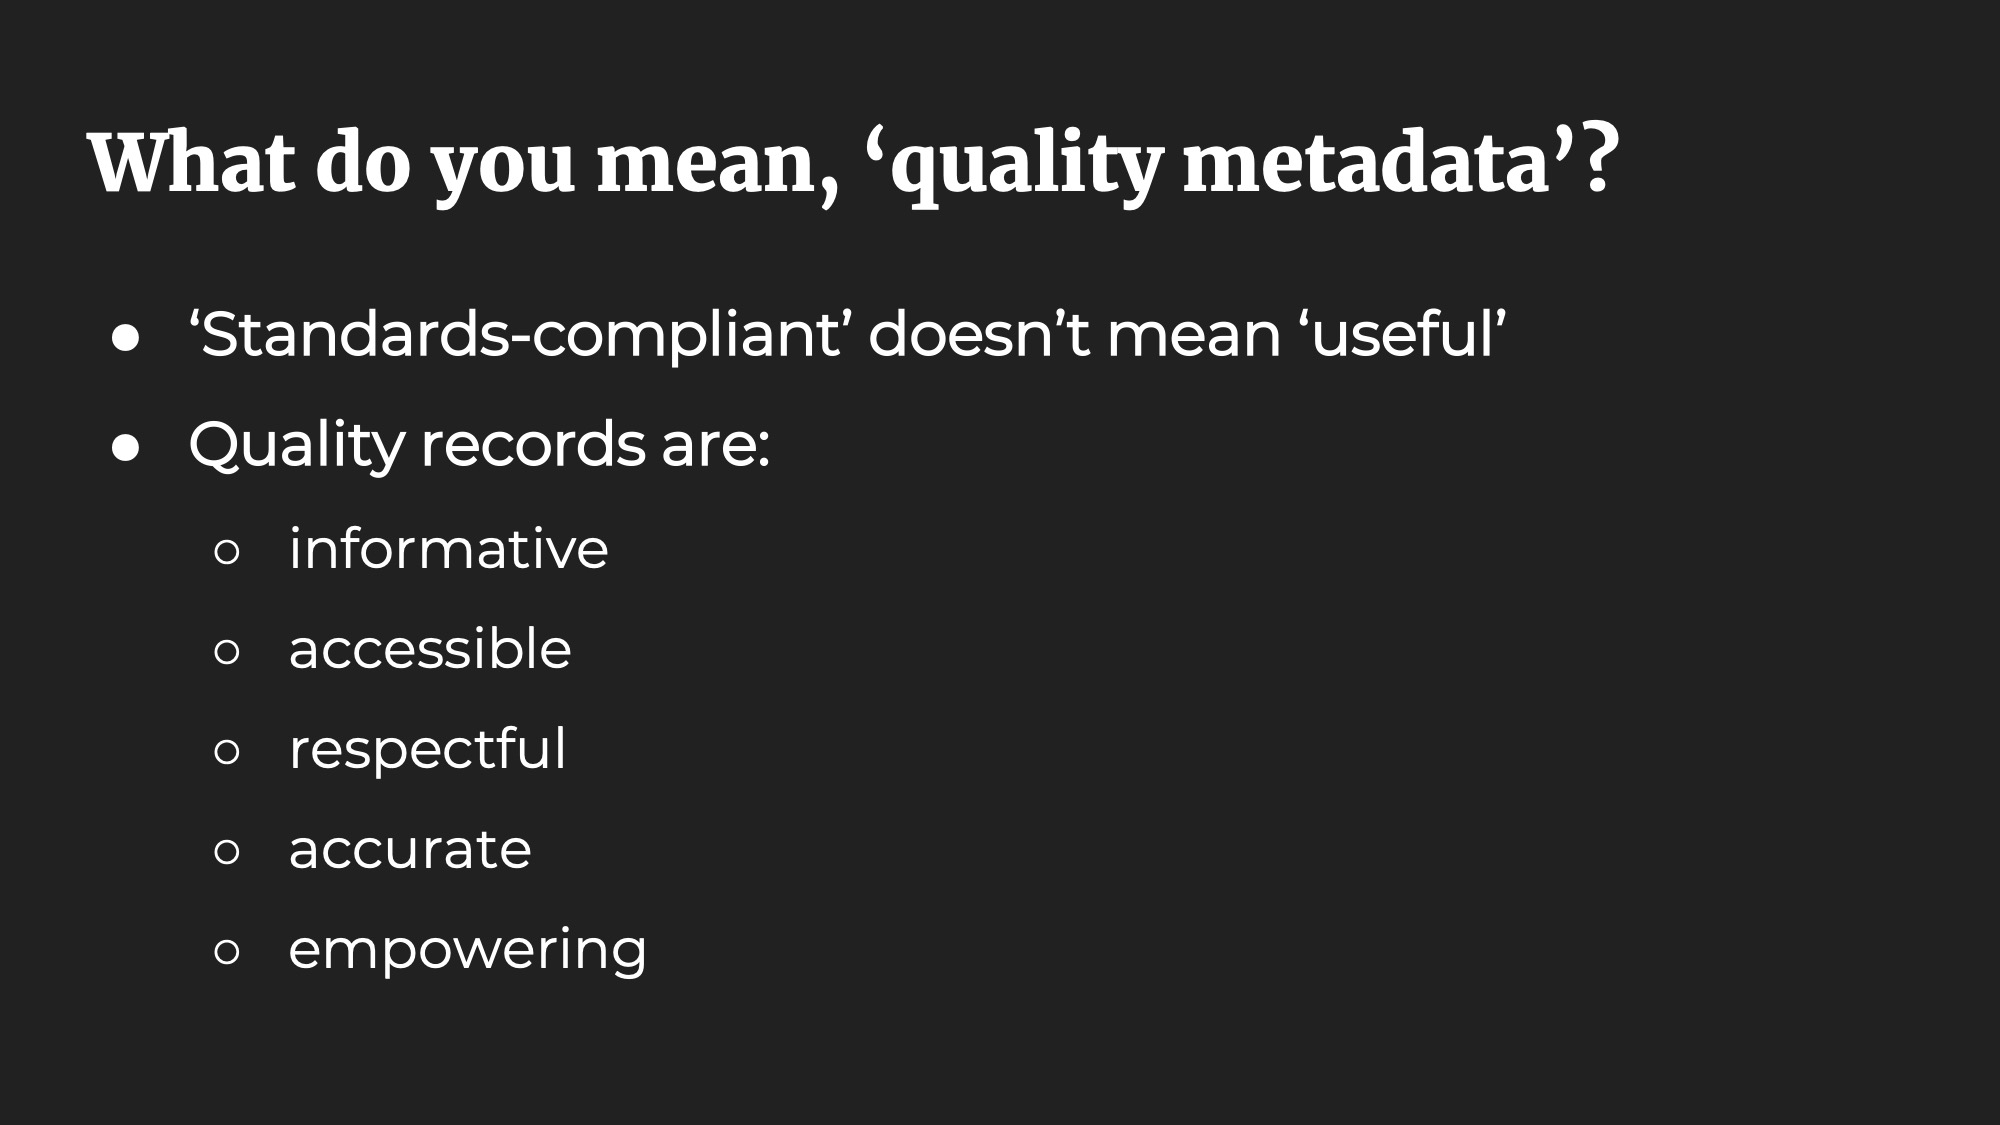 What do you mean, 'quality metadata'? 'Standards-compliant' doesn't mean 'useful'. Quality records are: informative, accessible, respectful, accurate, empowering